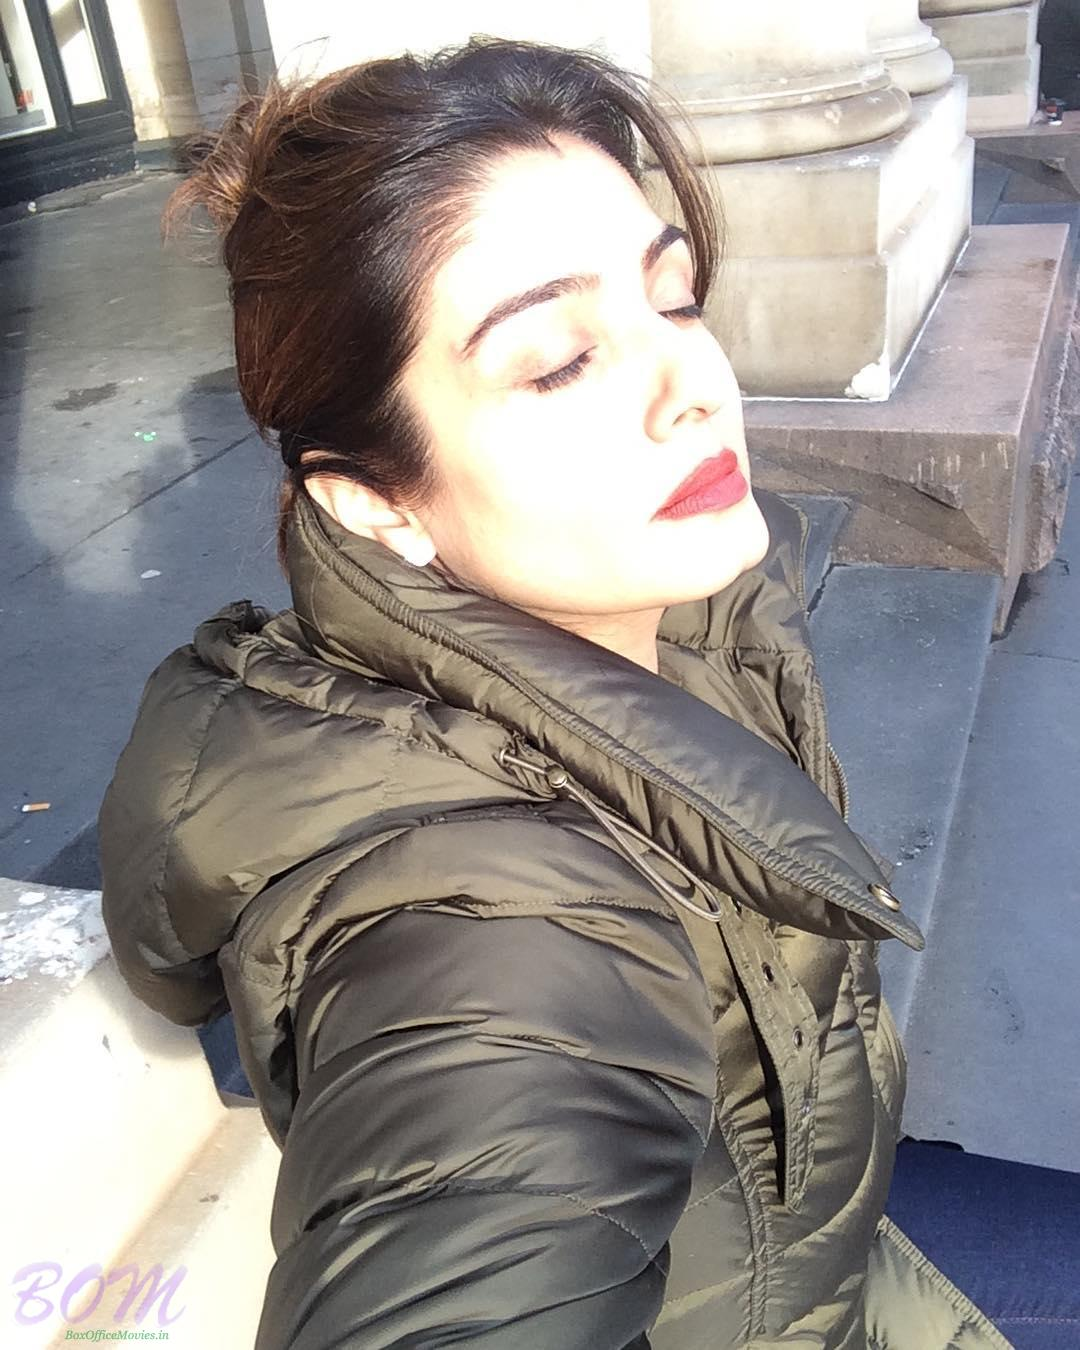 Raveena Tandon could not stop herself from taking this picture with natural light on her face.